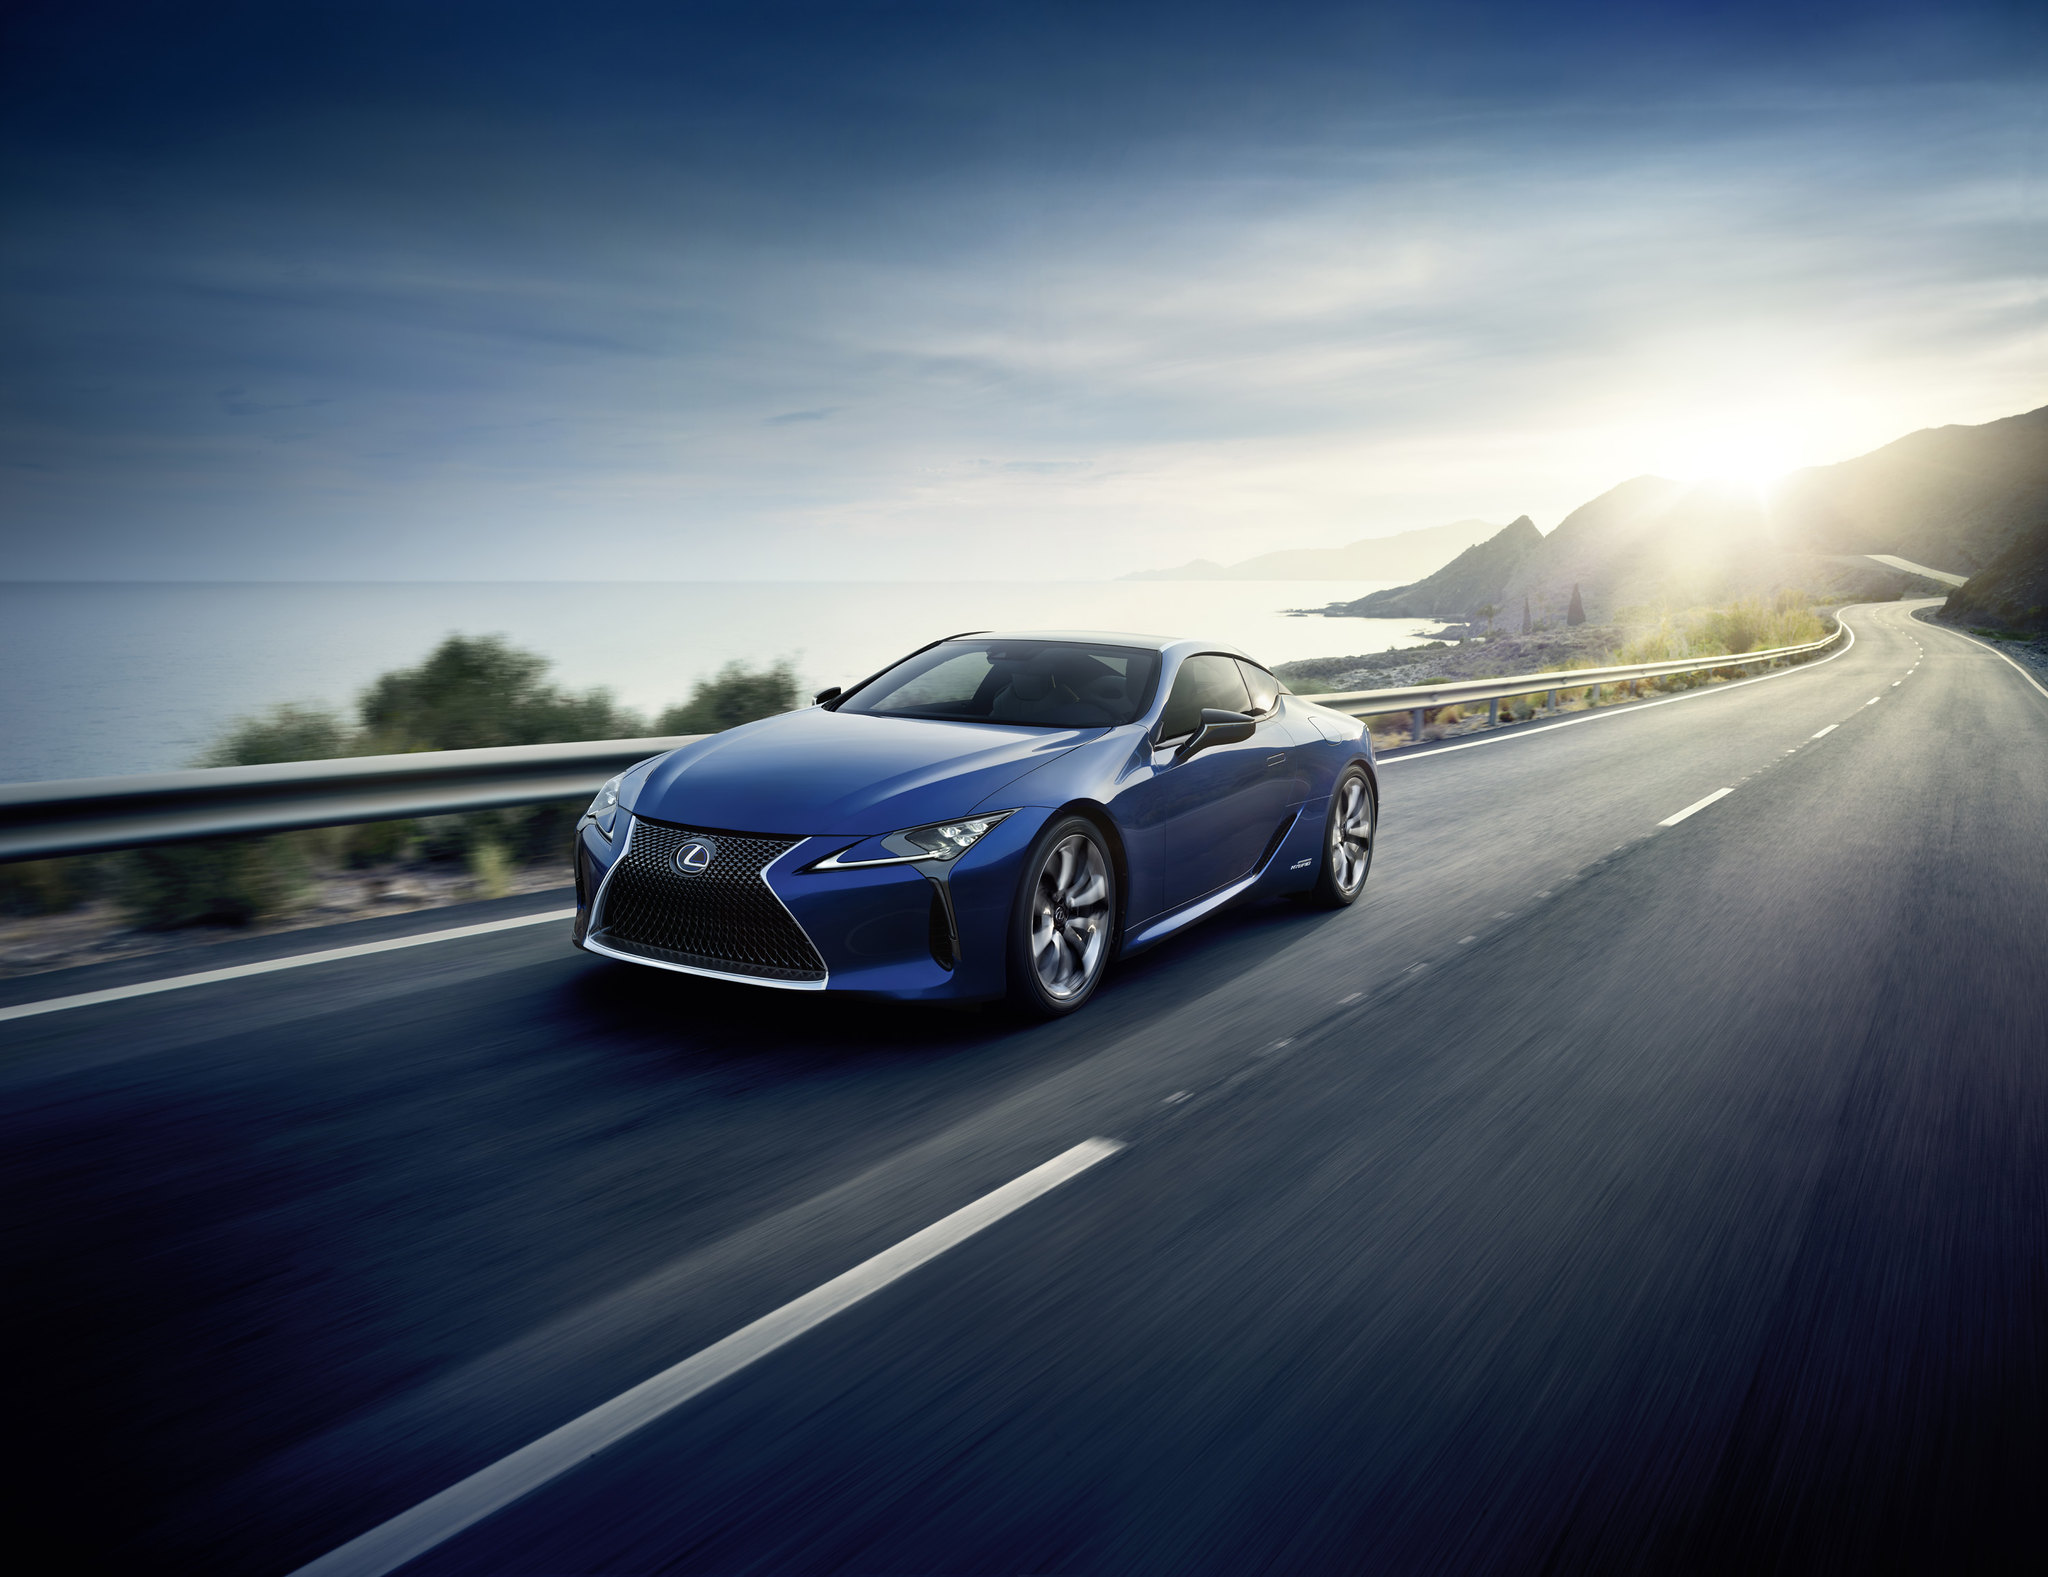 World premiere of the LC 500h features next-gen Lexus Multi Stage Hybrid System